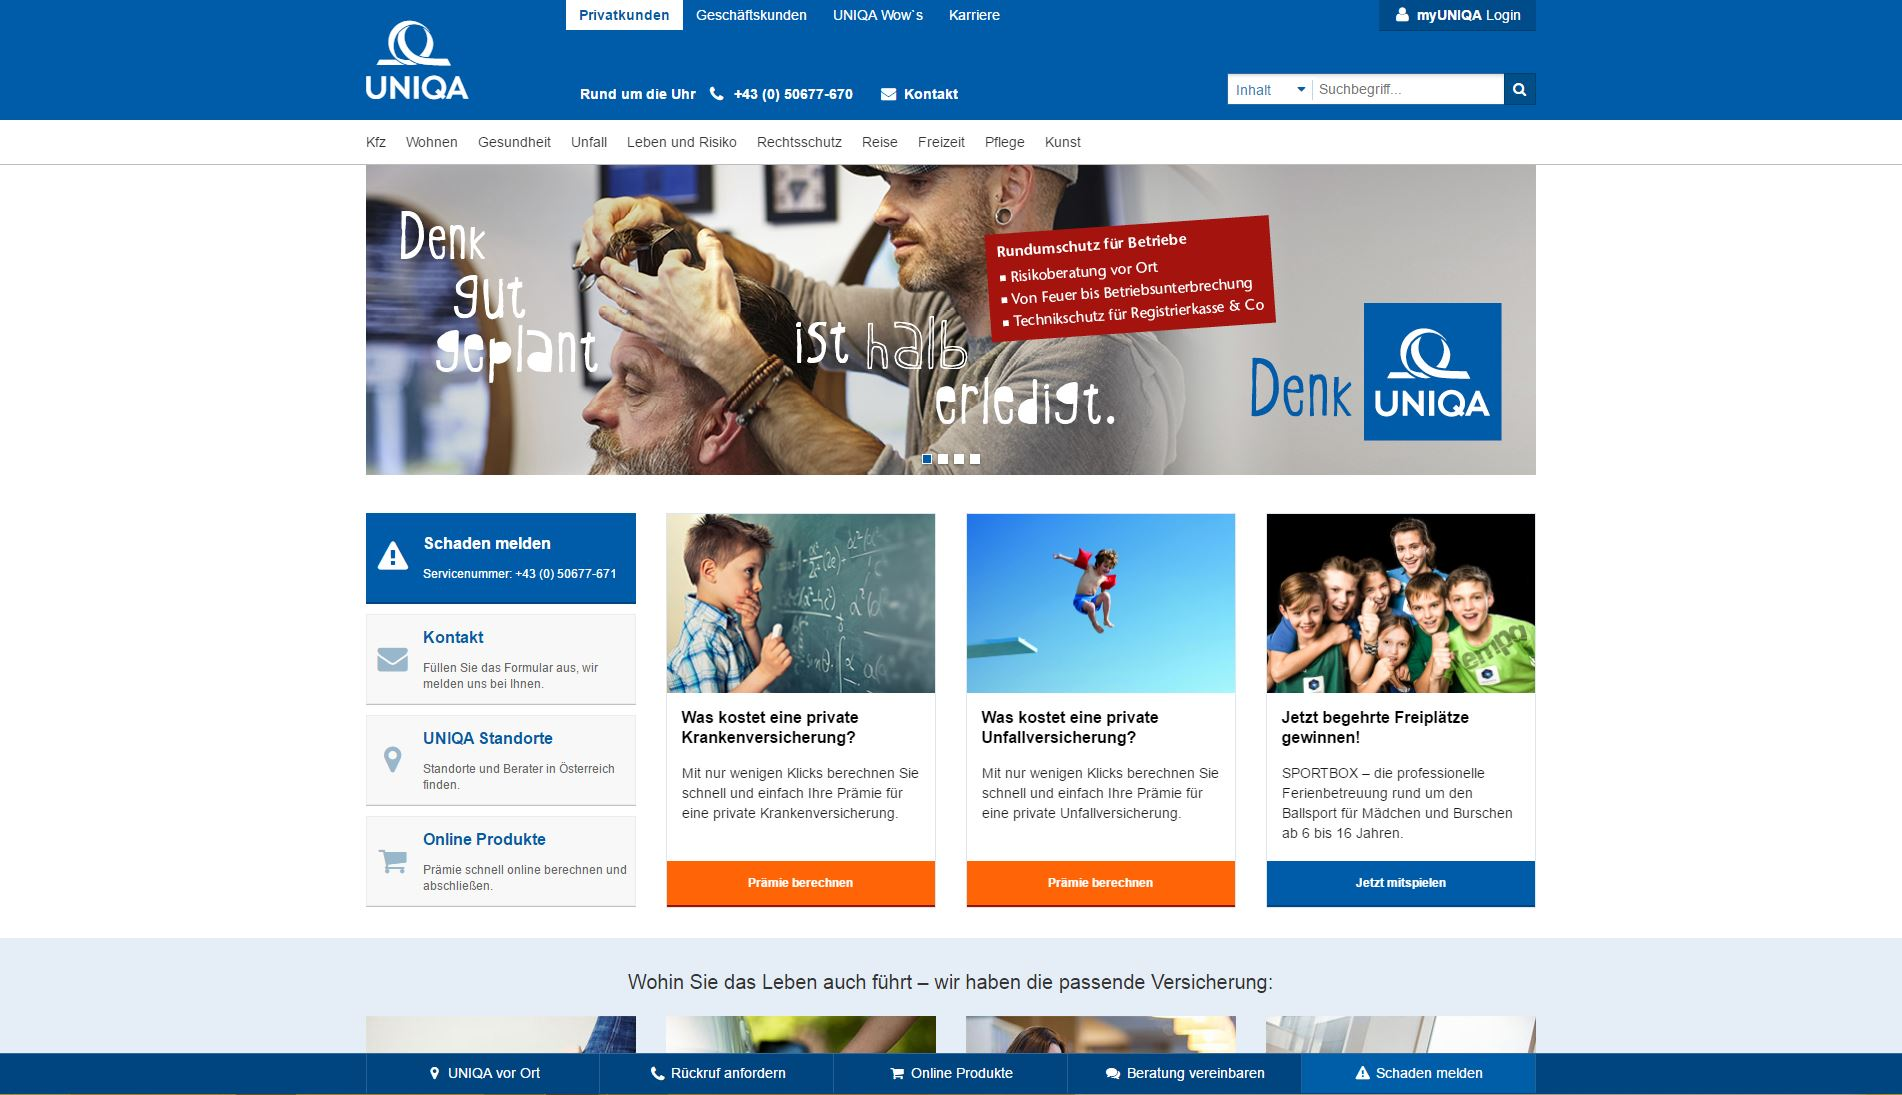 Screenshot der Website der UNIQA Versicherung